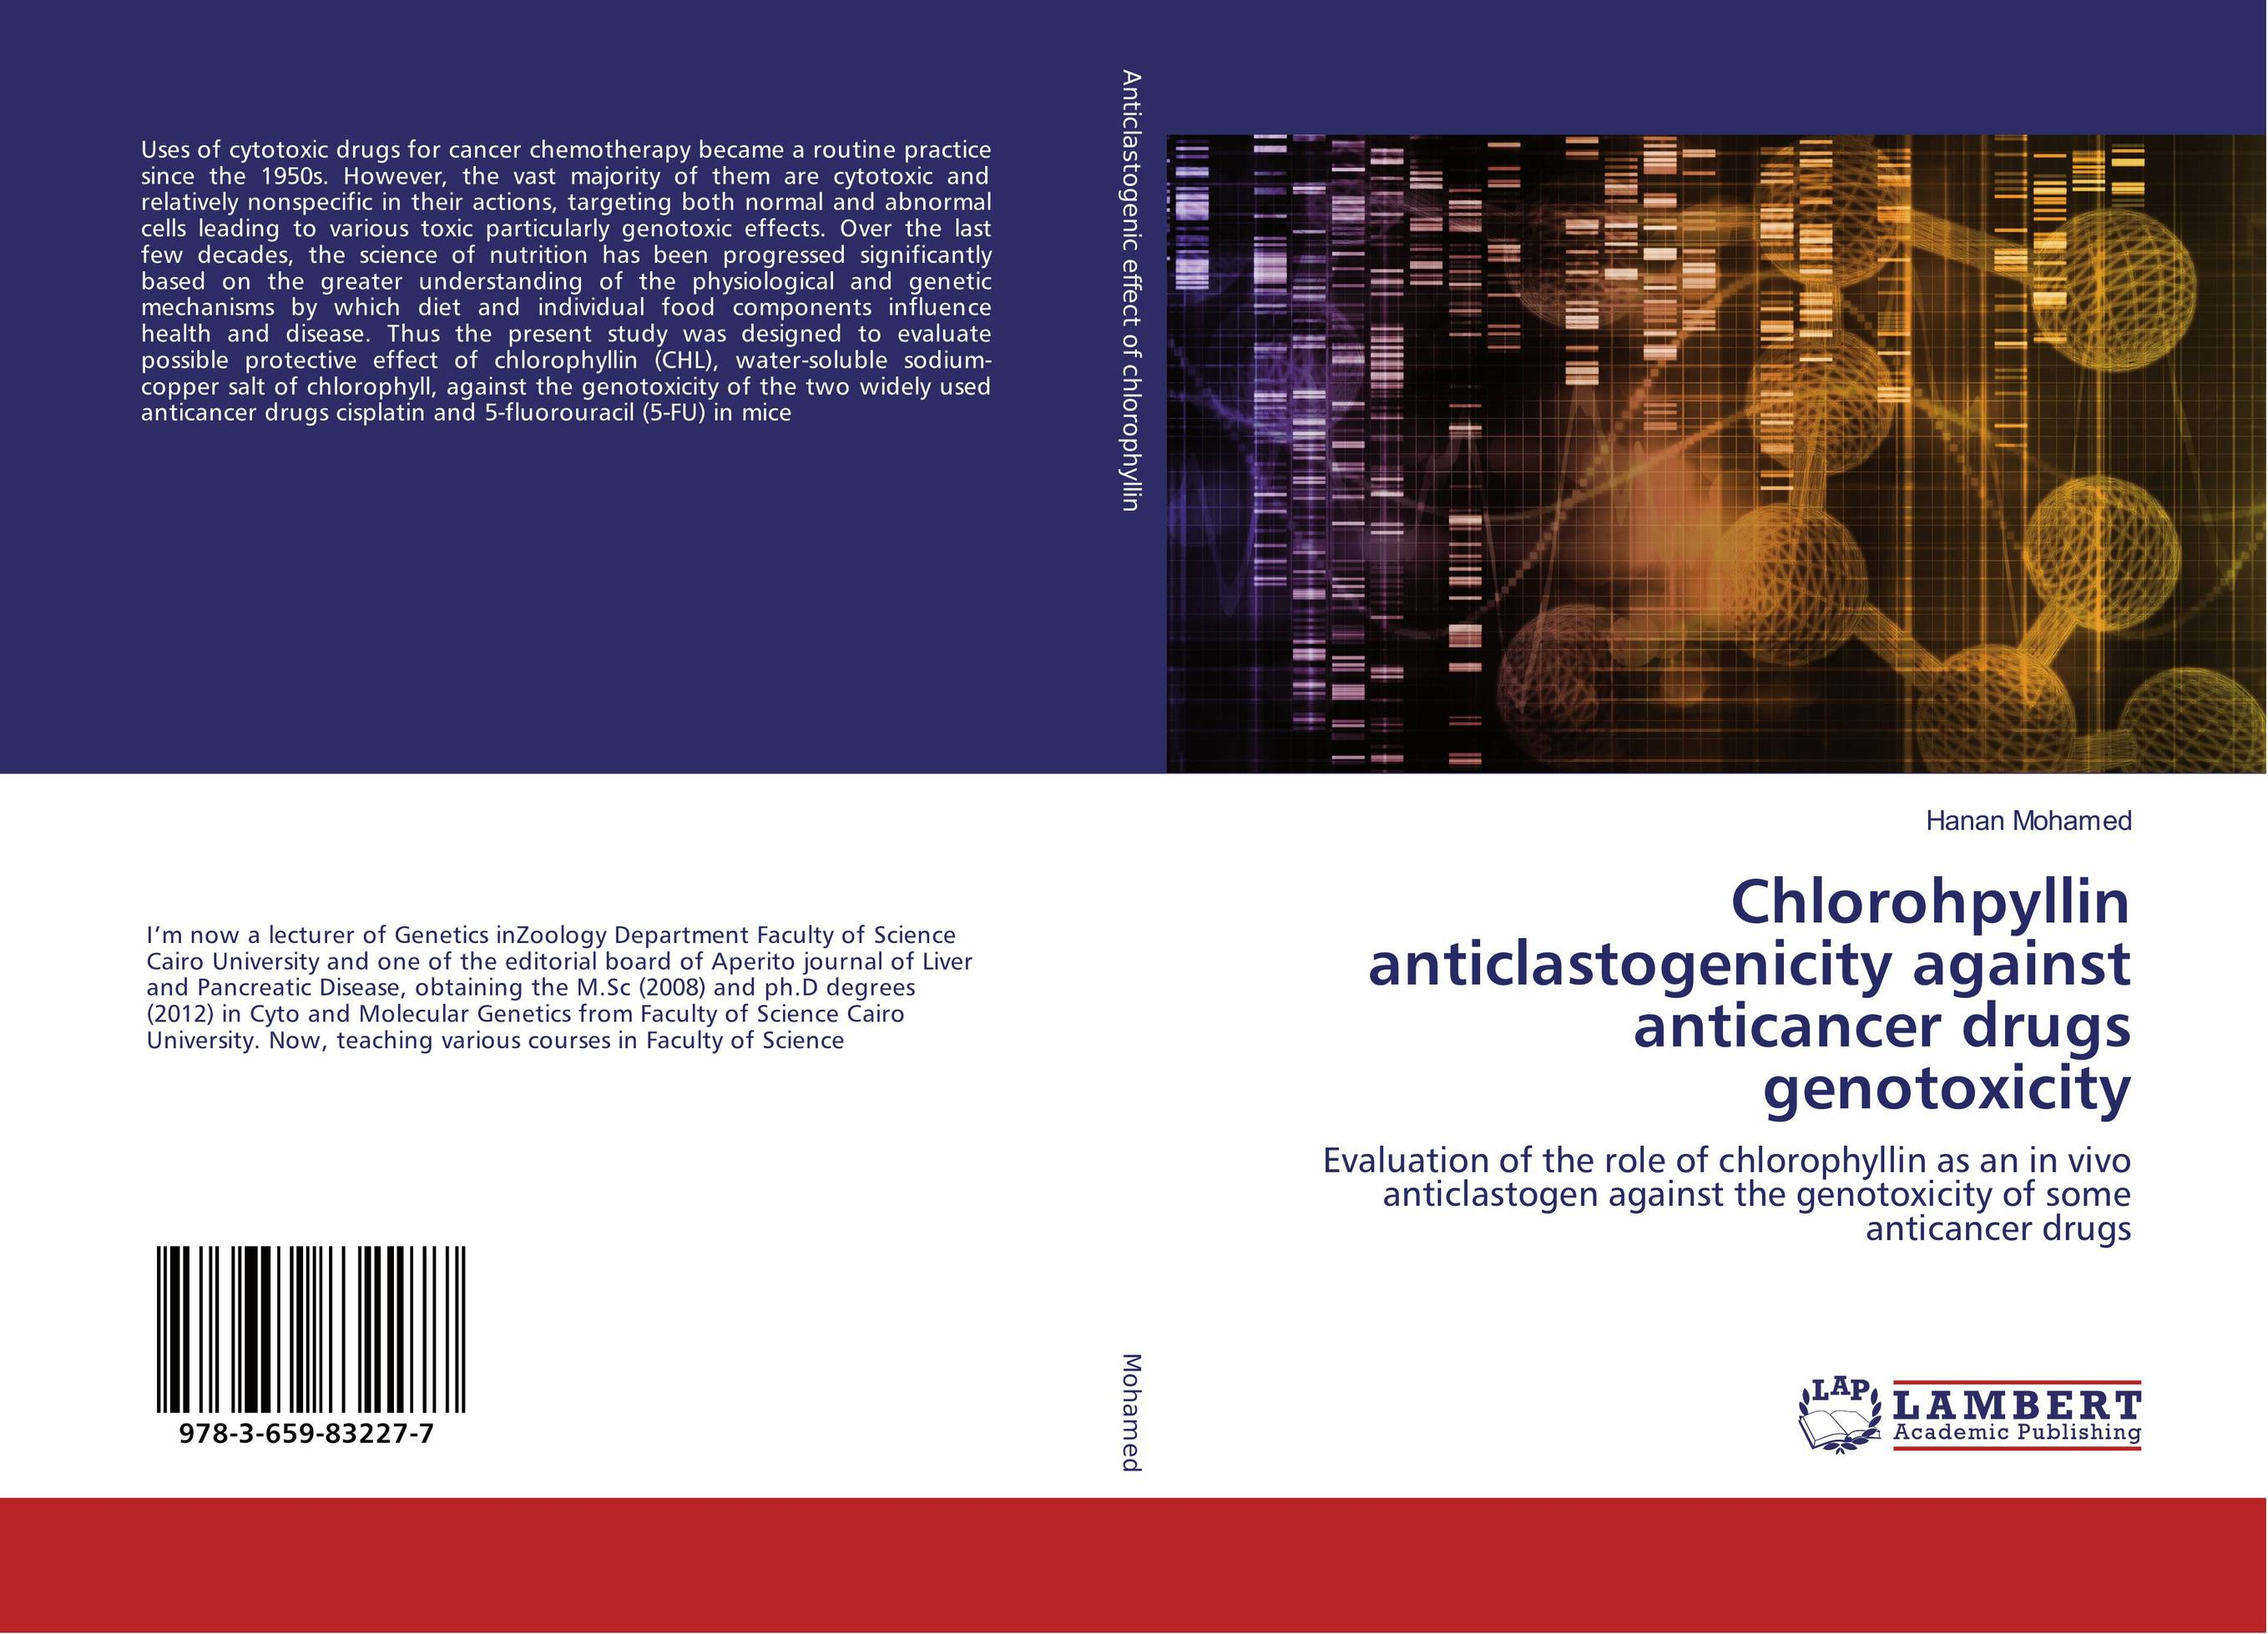 Chlorohpyllin anticlastogenicity against anticancer drugs genotoxicity medicinal chemistry of anticancer drugs